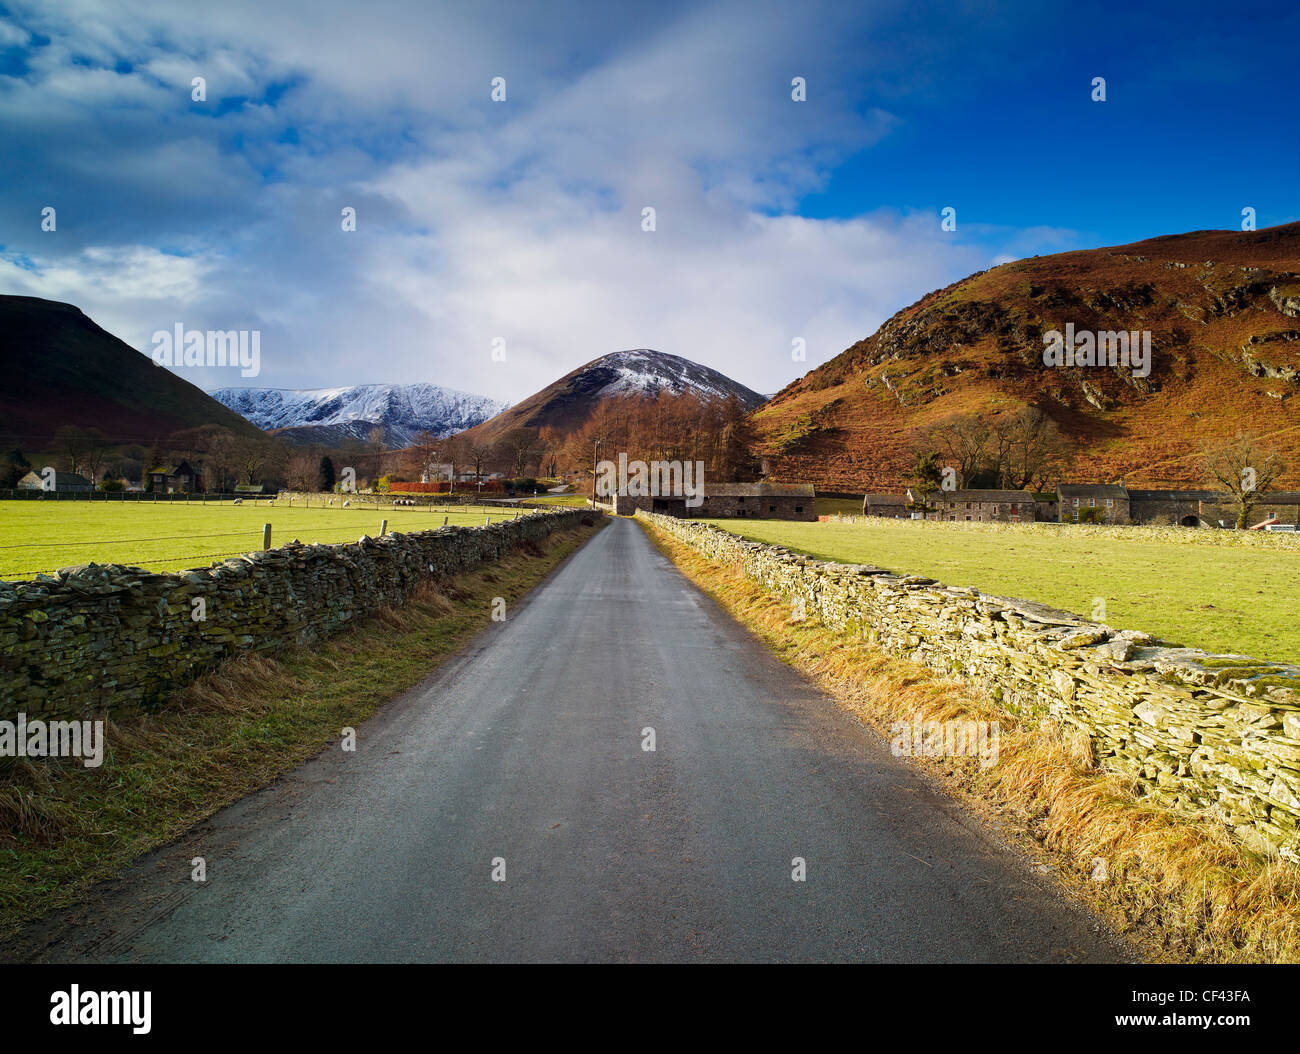 Looking along a quiet lane towards the remote Cumbrian village of Mungrisdale in the Lake District. - Stock Image